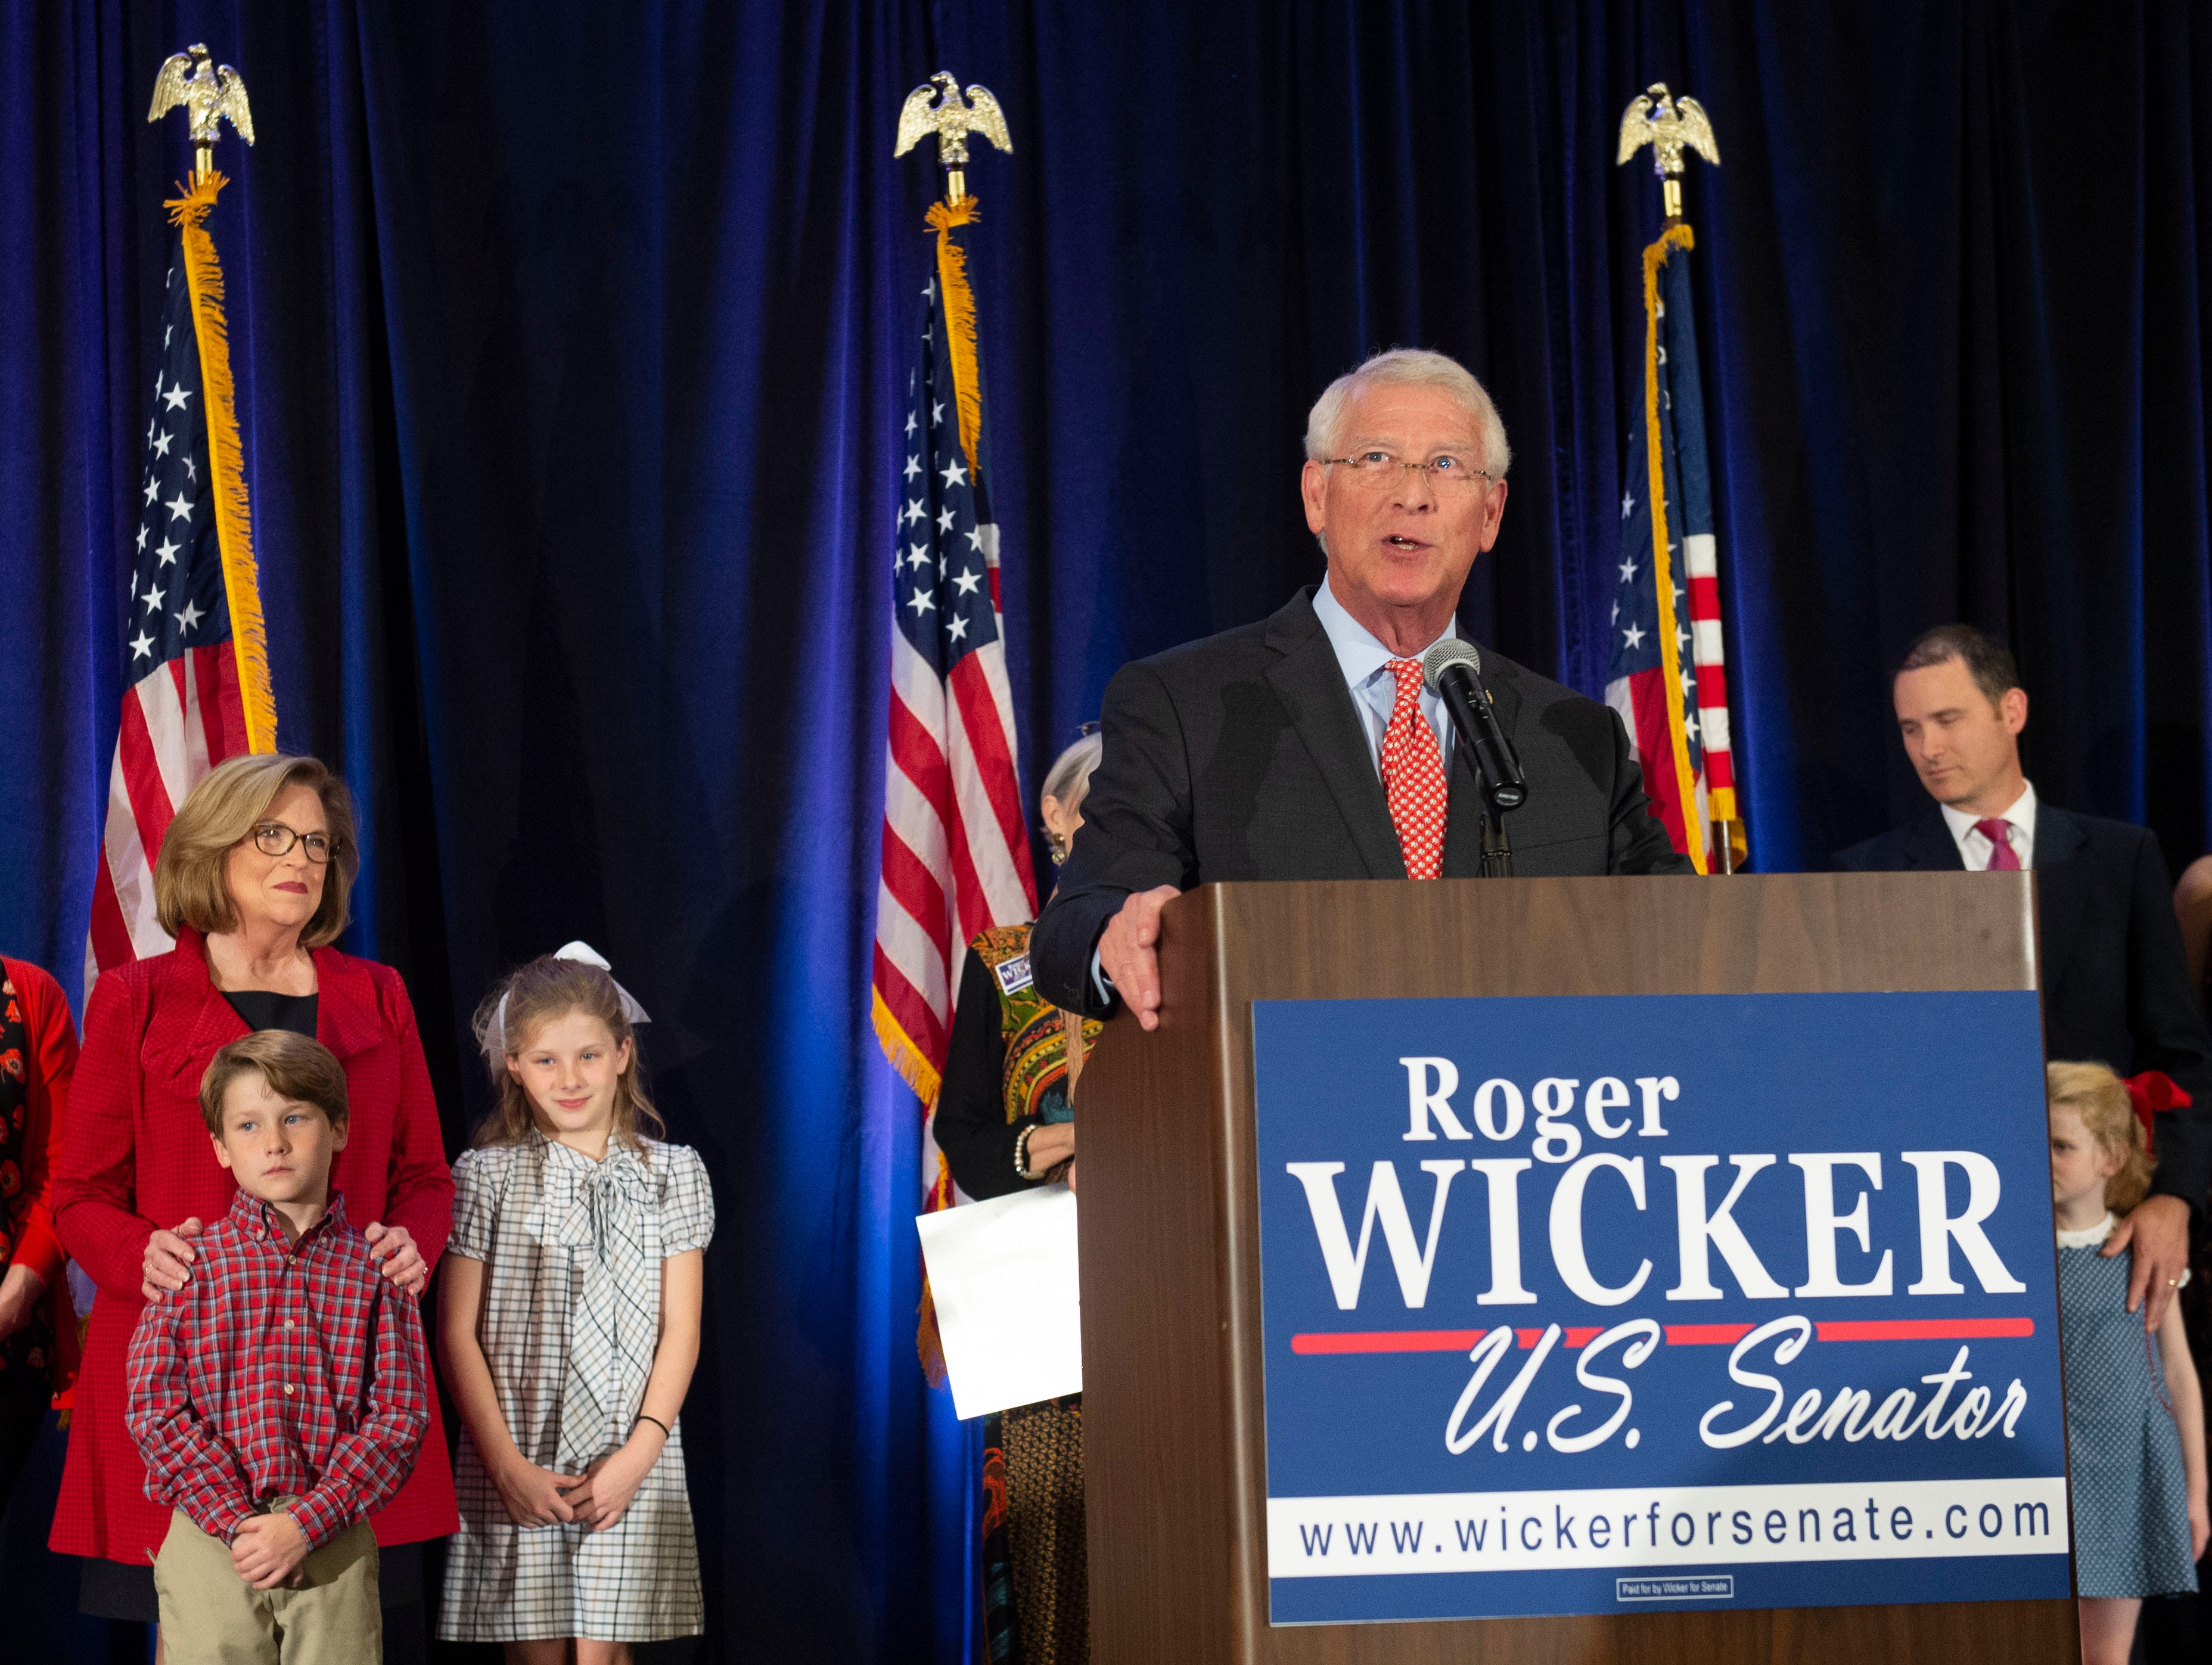 U.S. Senator Roger Wicker speaks to supporters following his acceptance speech at the election night party for Wicker and Sen. Cindy Hyde-Smith at the Westin hotel in downtown Jackson. Tuesday, Nov. 6, 2018.